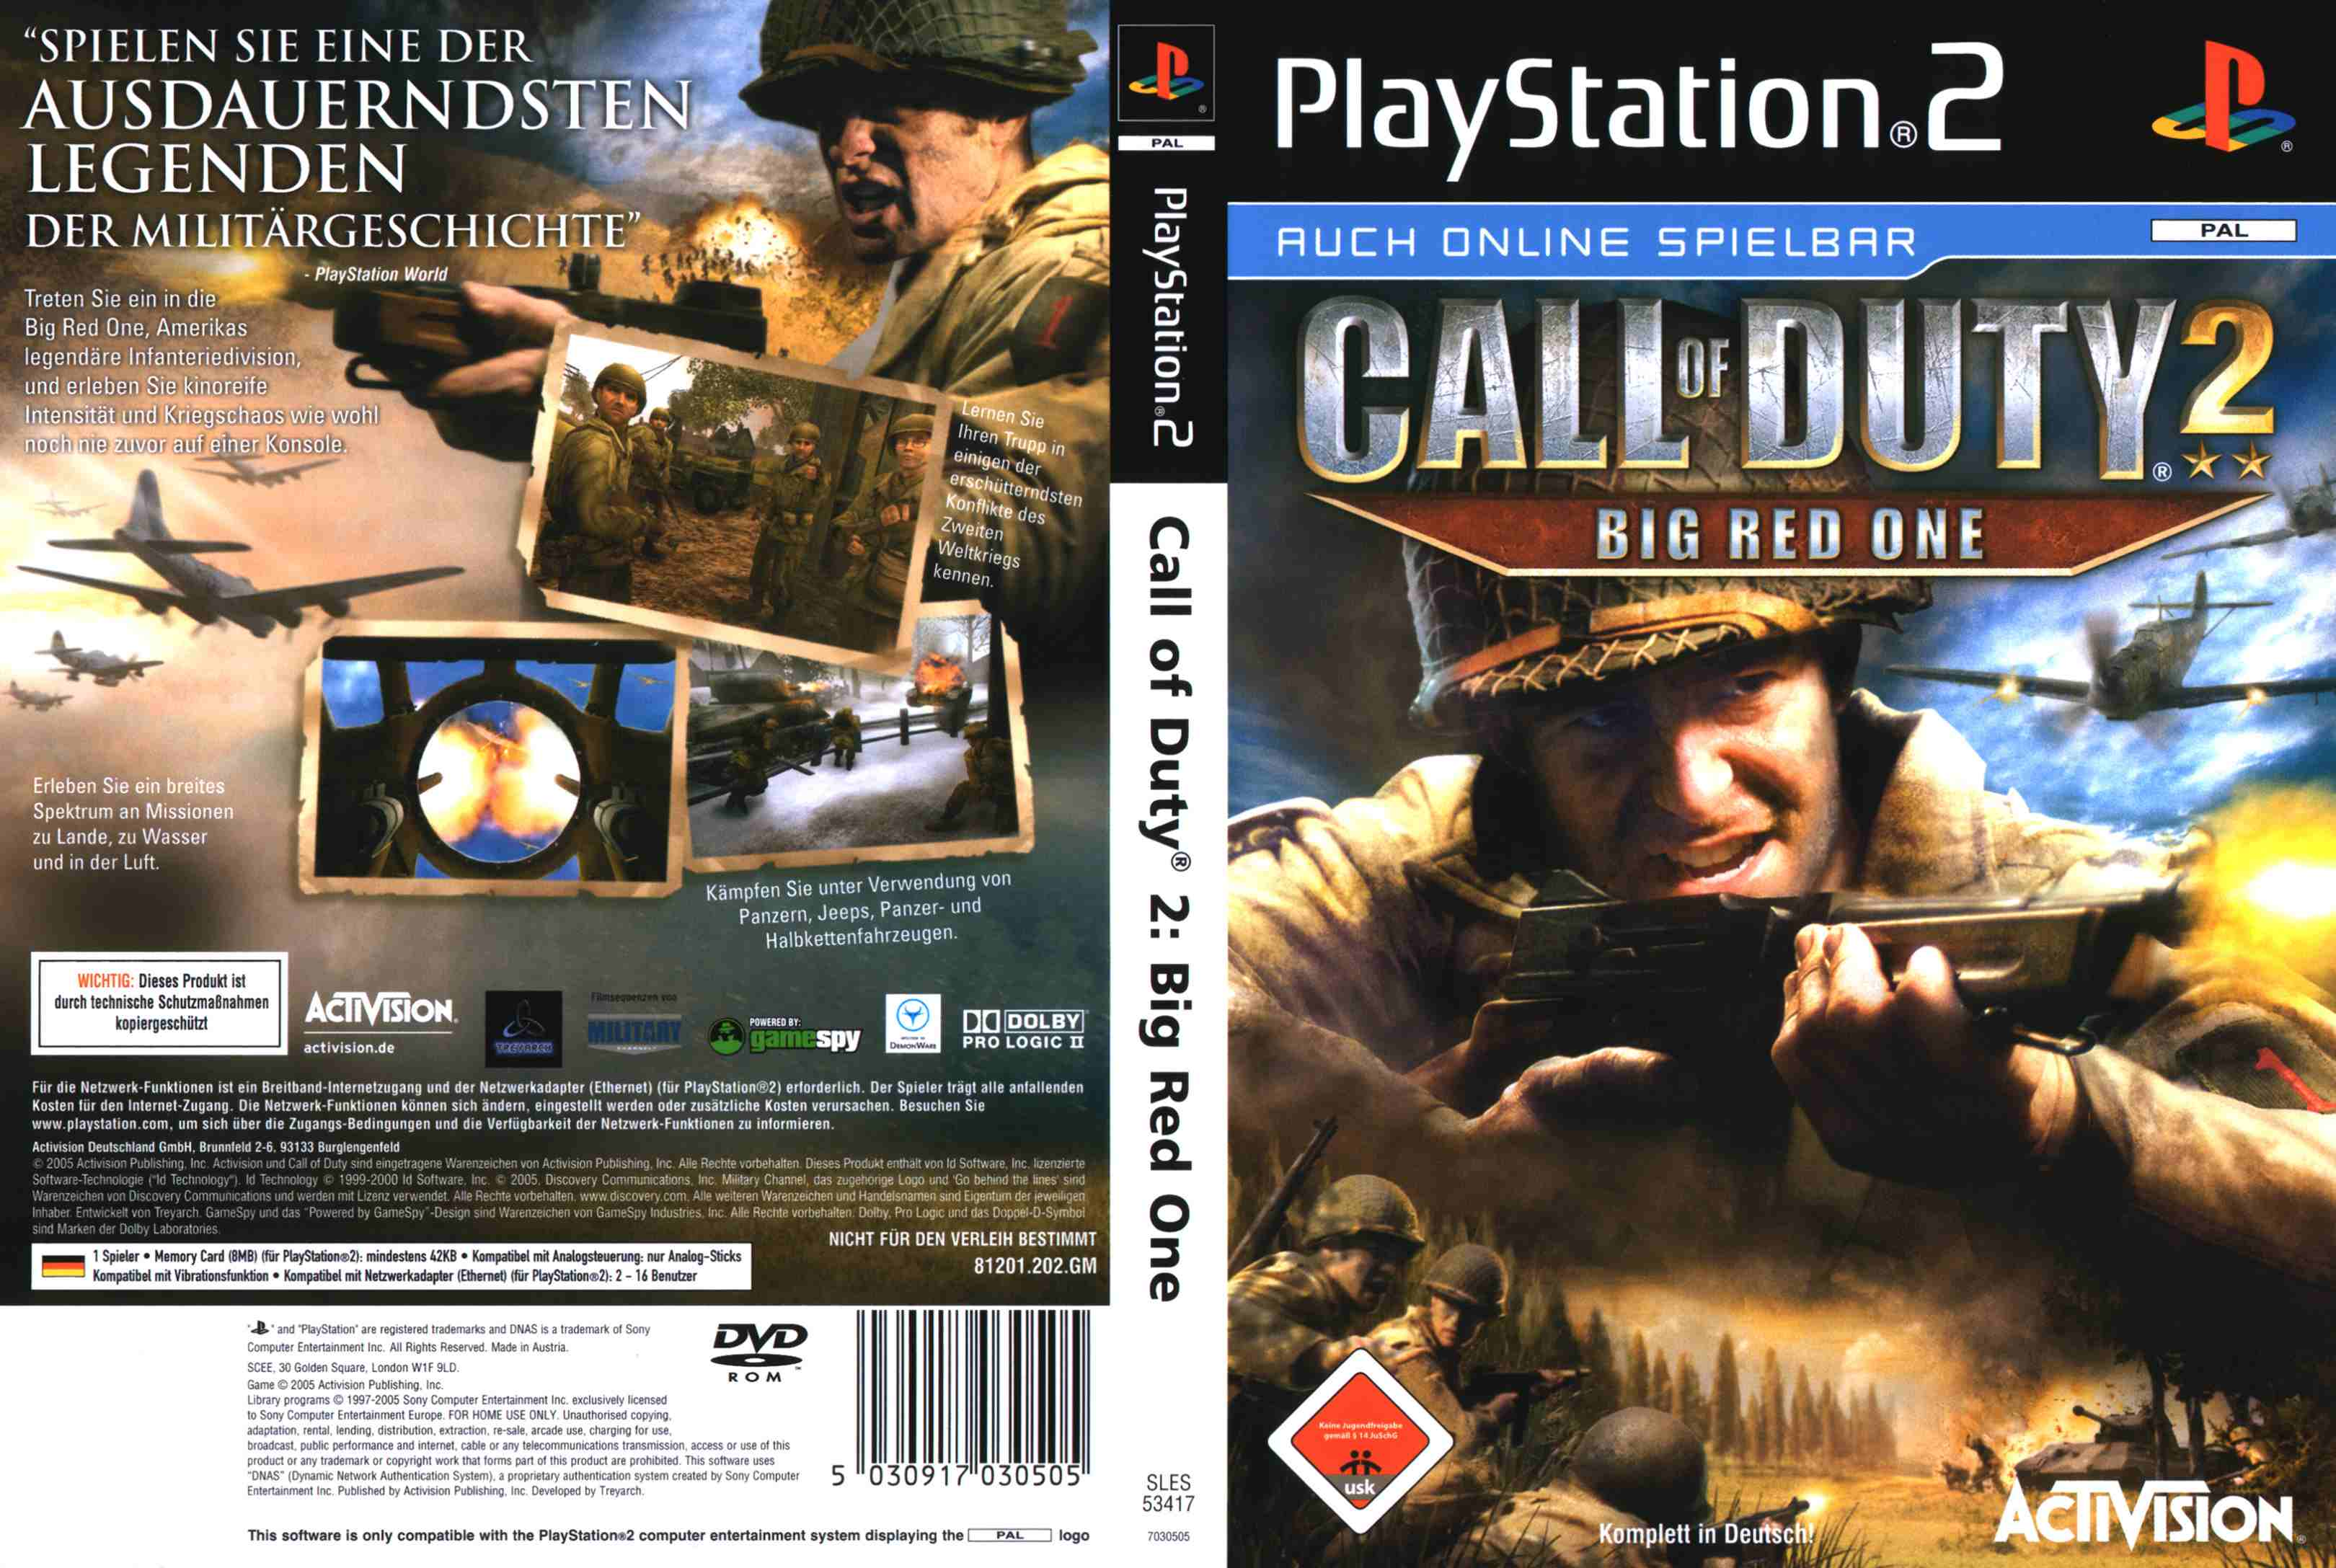 call of duty 2 big red one ps2 dvd | Playstation 2 Covers